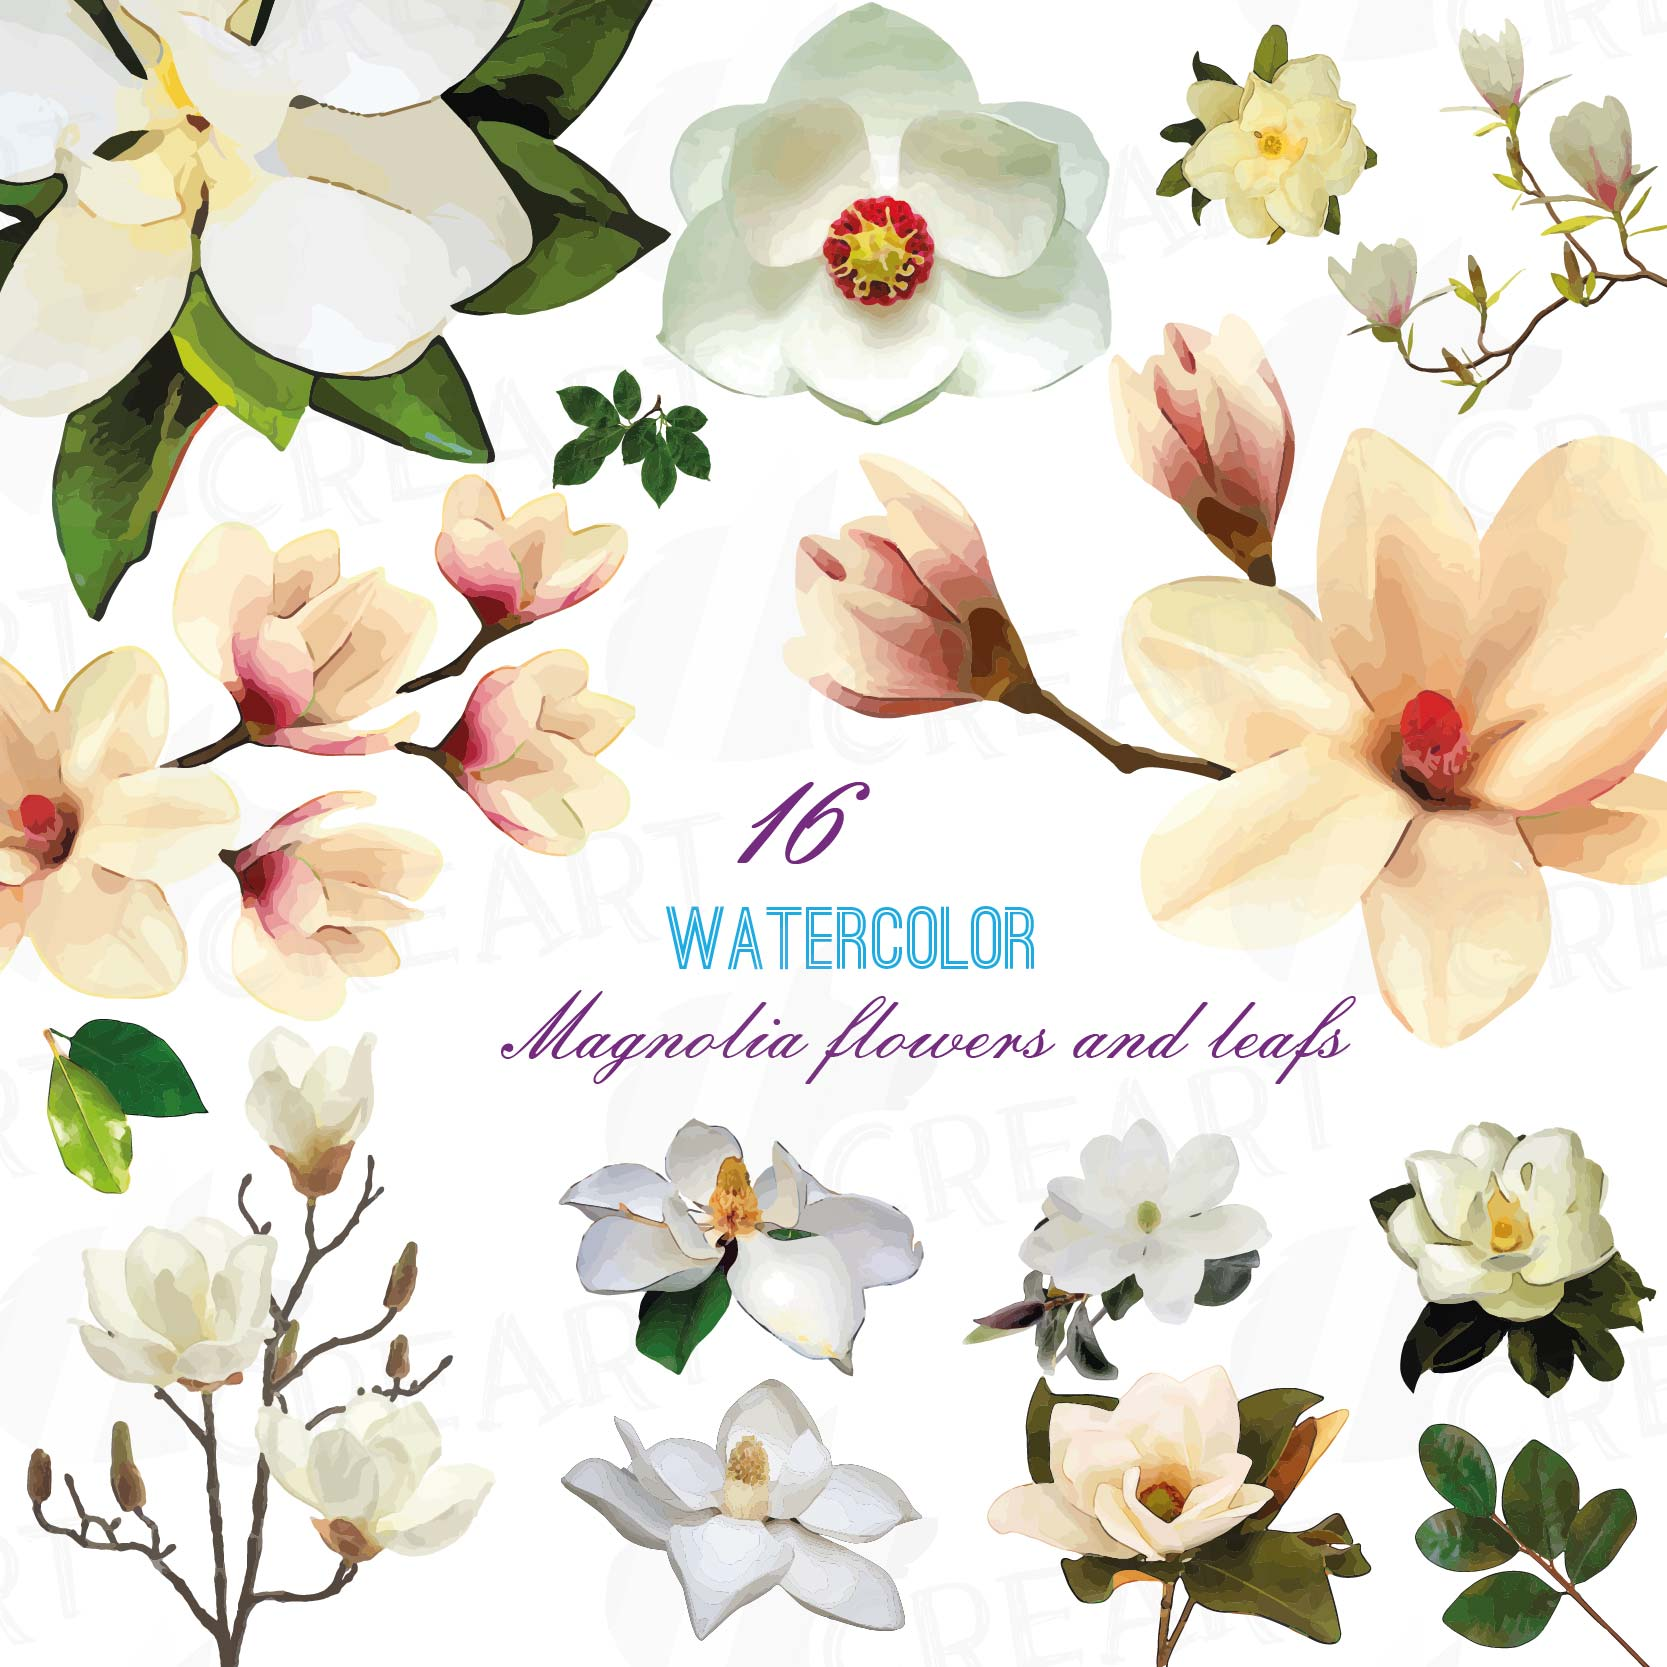 White magnolia clipart image royalty free download Watercolor white Magnolia flowers and leafs clip art pack, magnolias clip  art. PNG, jpg, svg, vector illustrator & corel files included image royalty free download